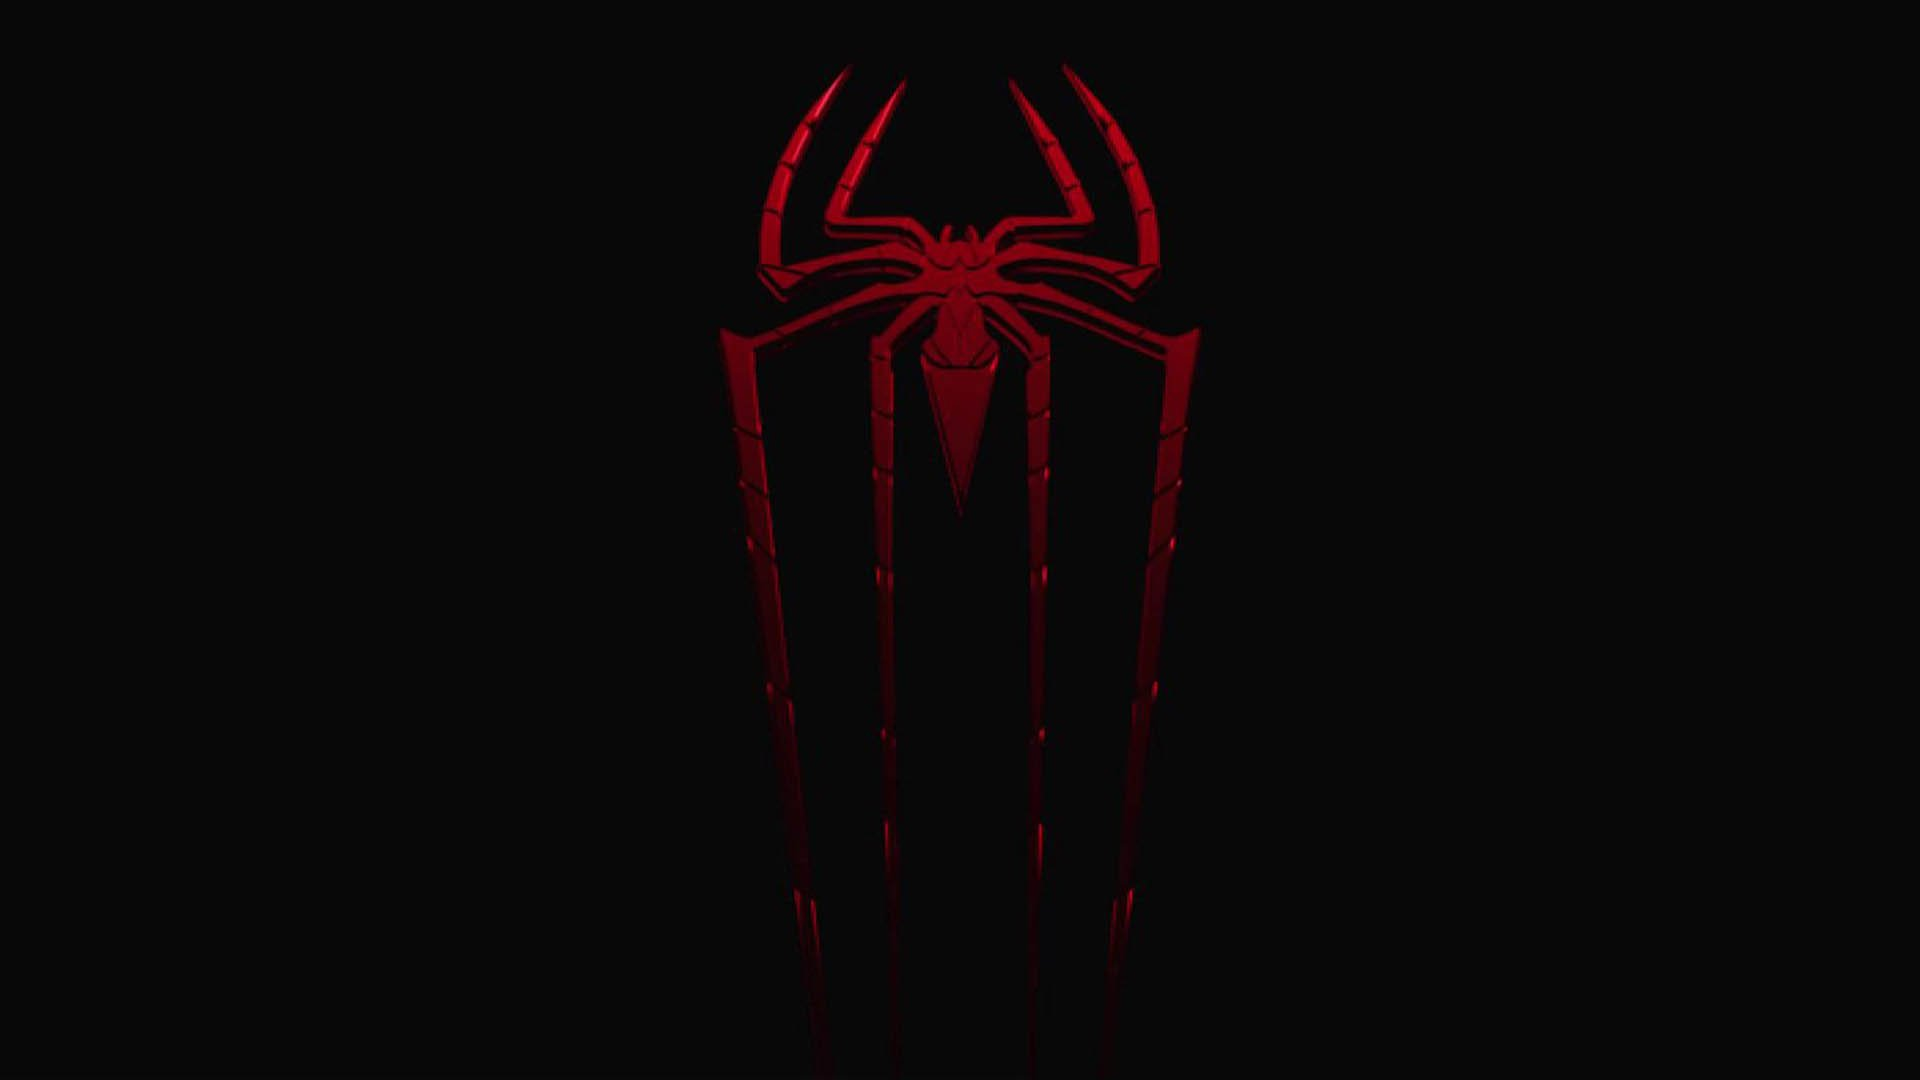 Download Spiderman Logo Wallpaper Mobile Gallery